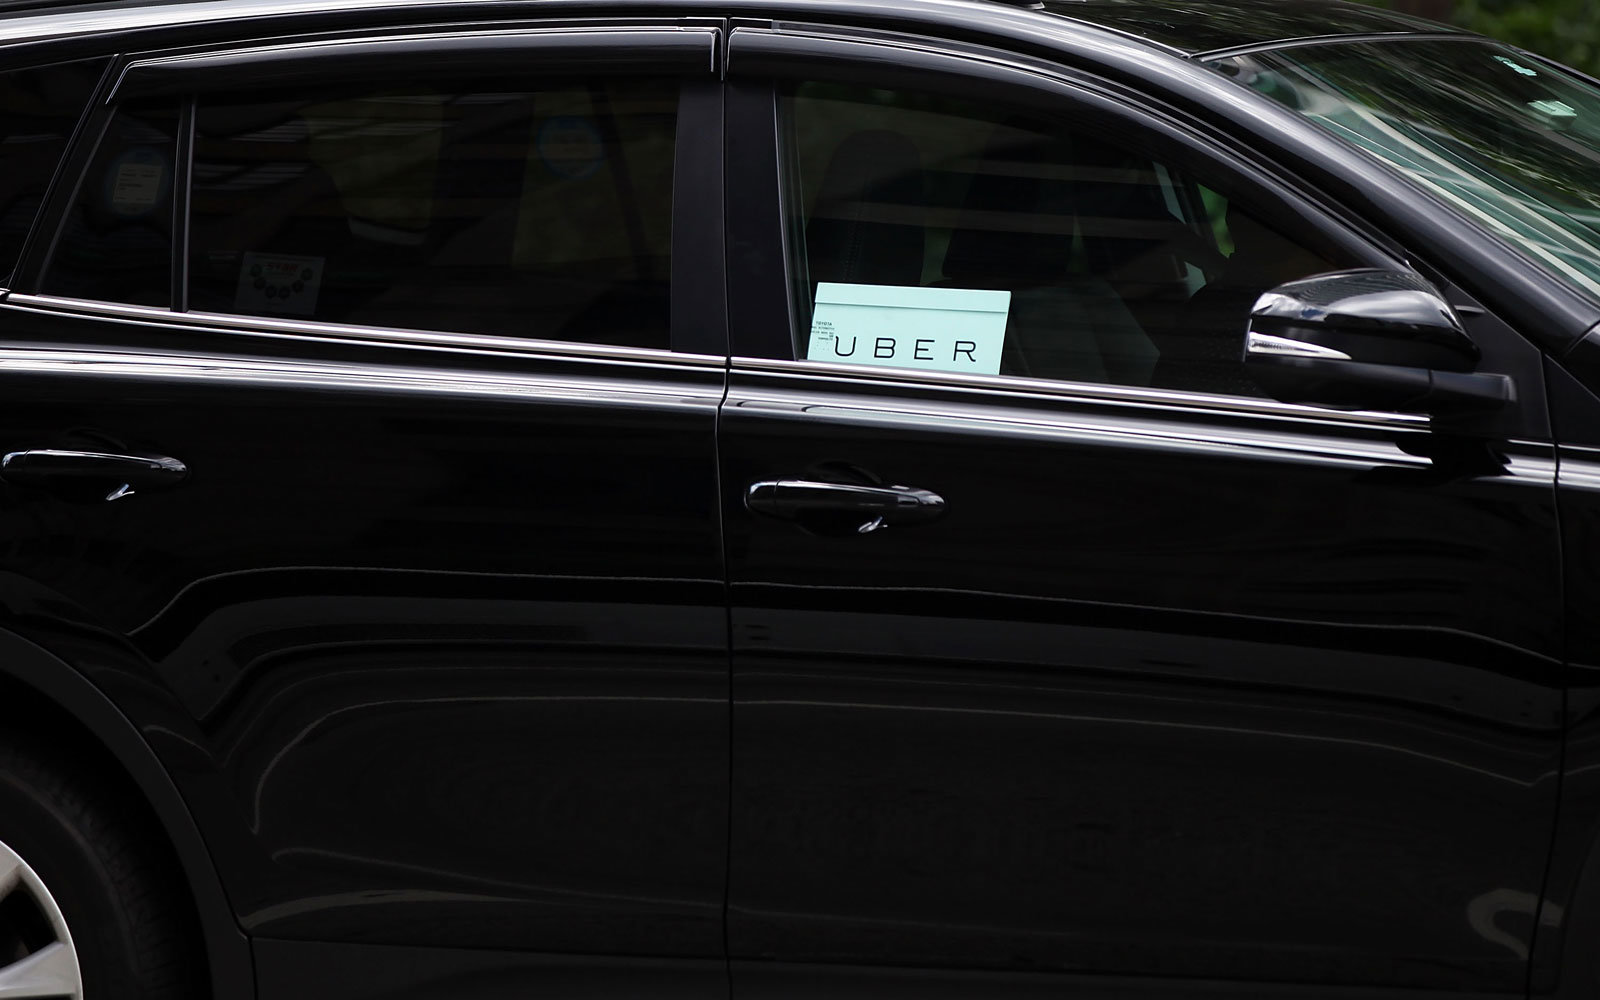 An Uber sign in a car window.